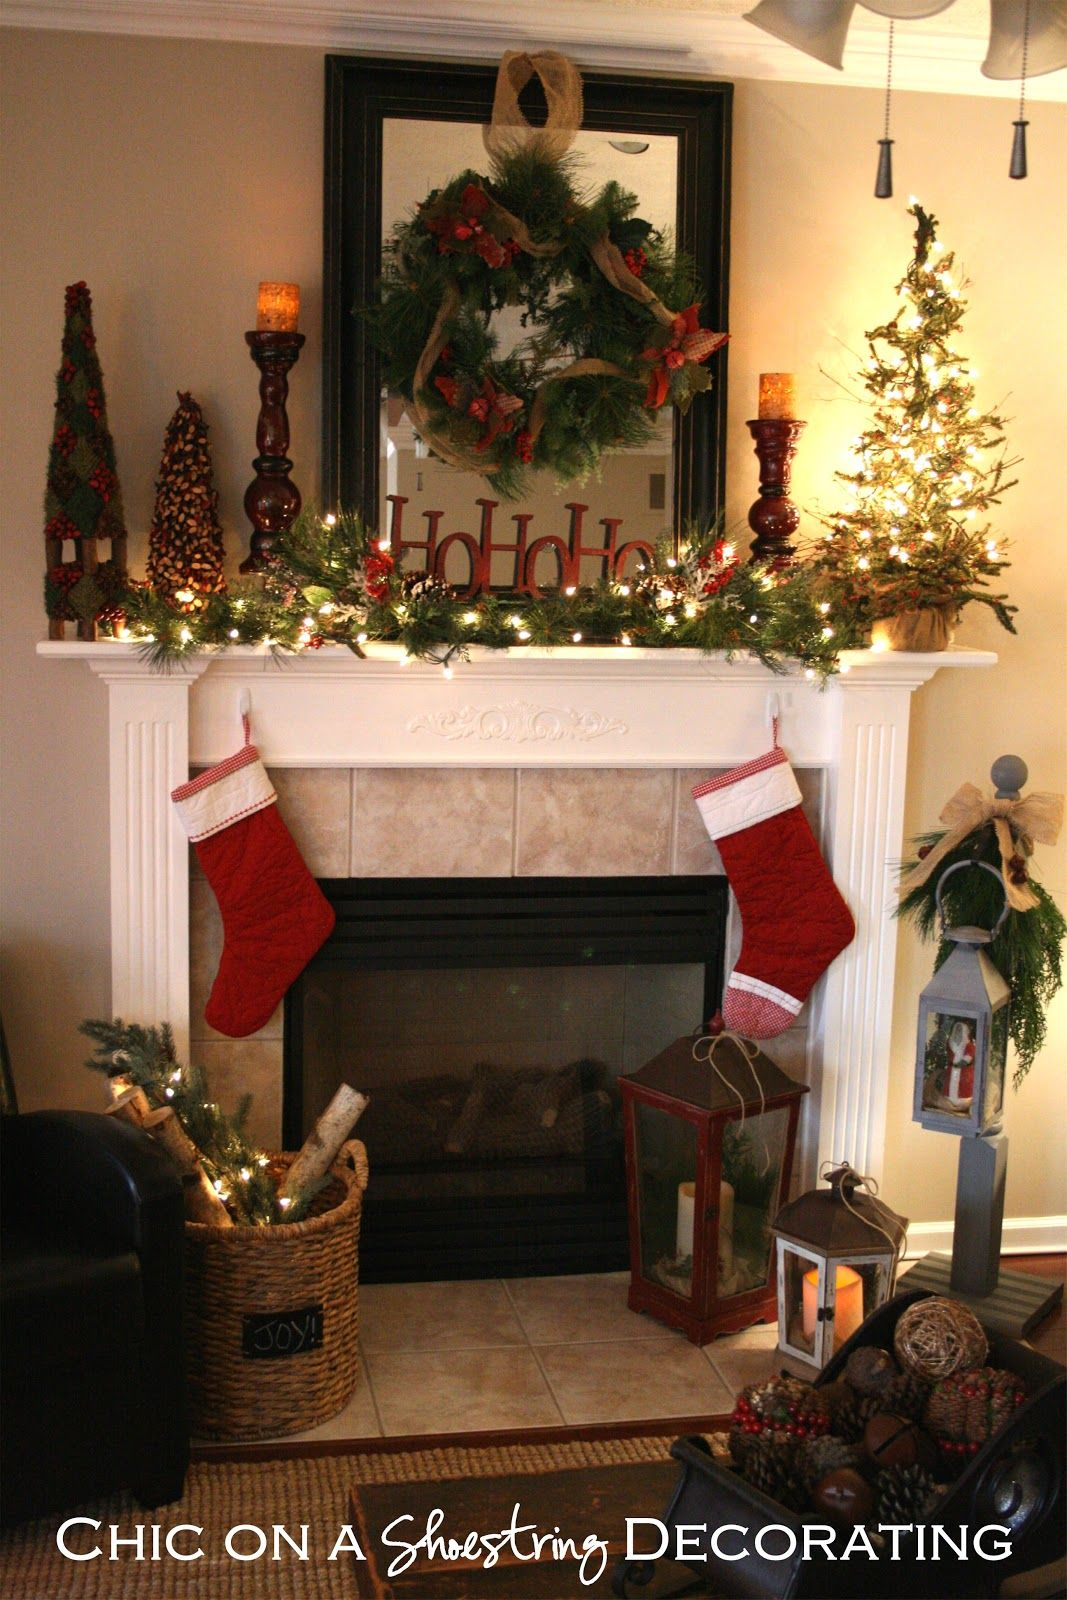 christmas mantel decorating ideas decided i could pull off a rustic christmas mantel on the cheap - Christmas Mantel Decorating Ideas